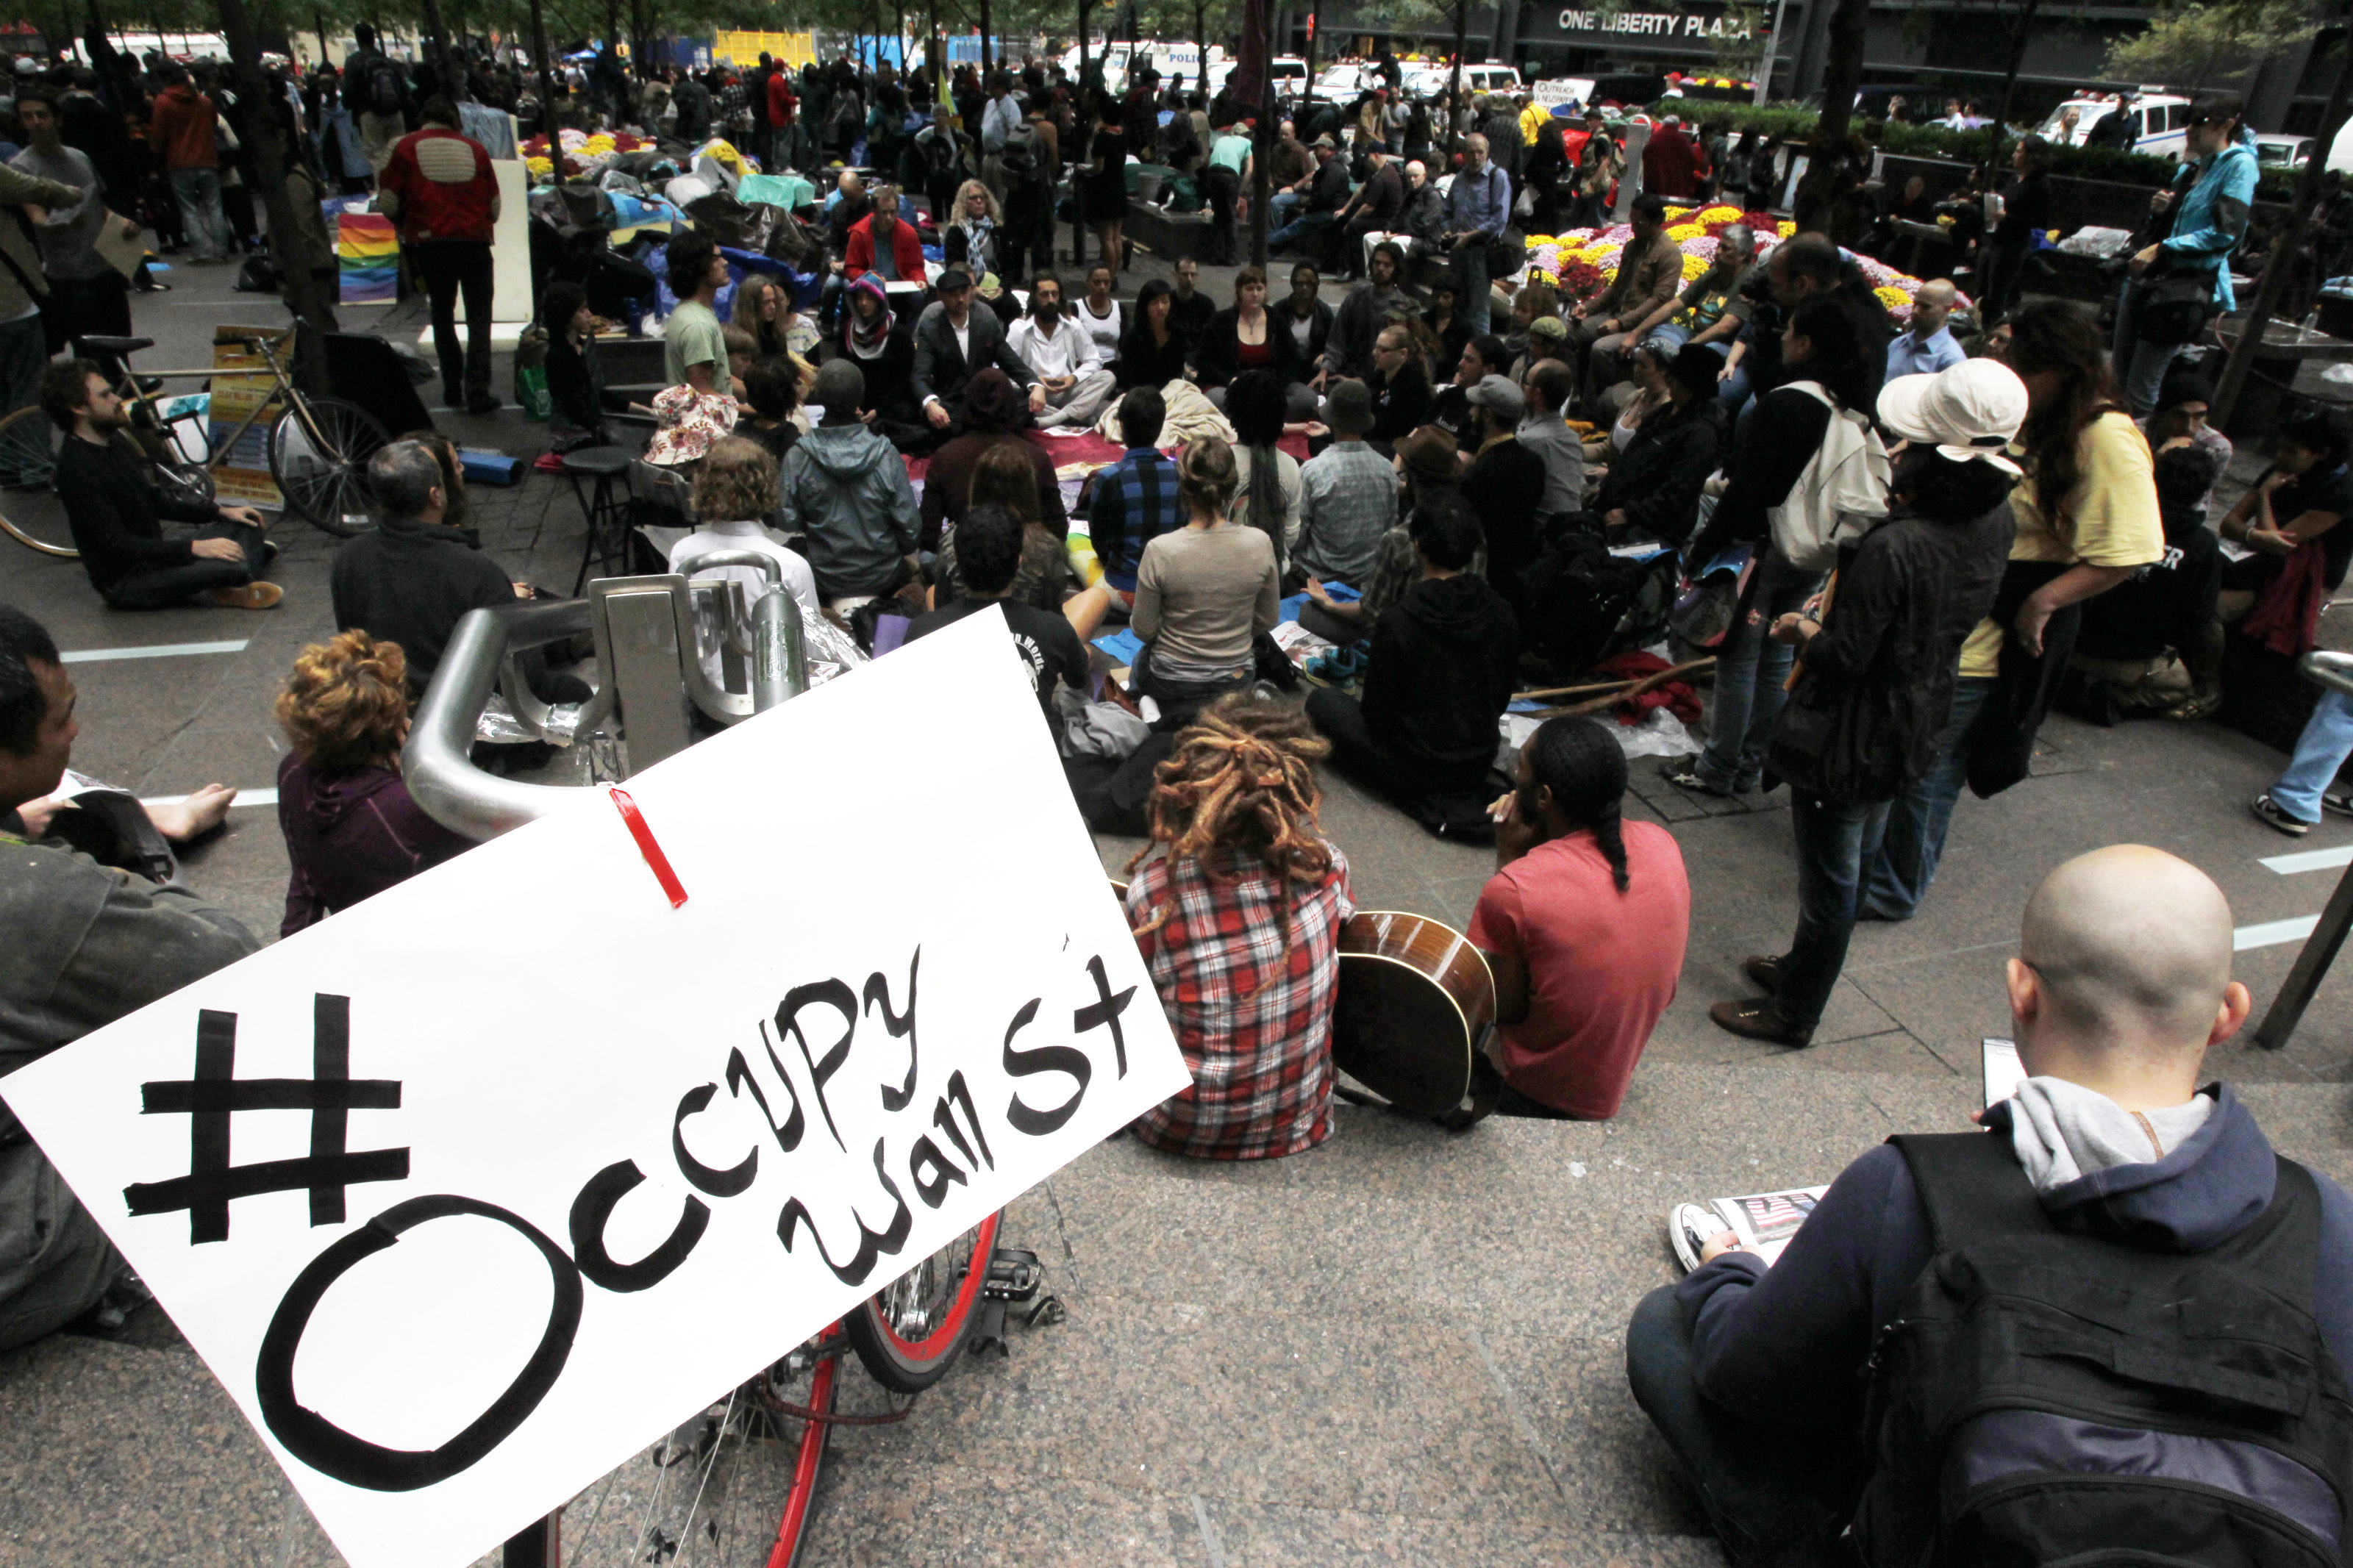 Occupy Wall Street protesters meditate while a sign bearing their Twitter handle hangs from a railing in Zuccotti Park in New York City, Oct. 1, 2011.